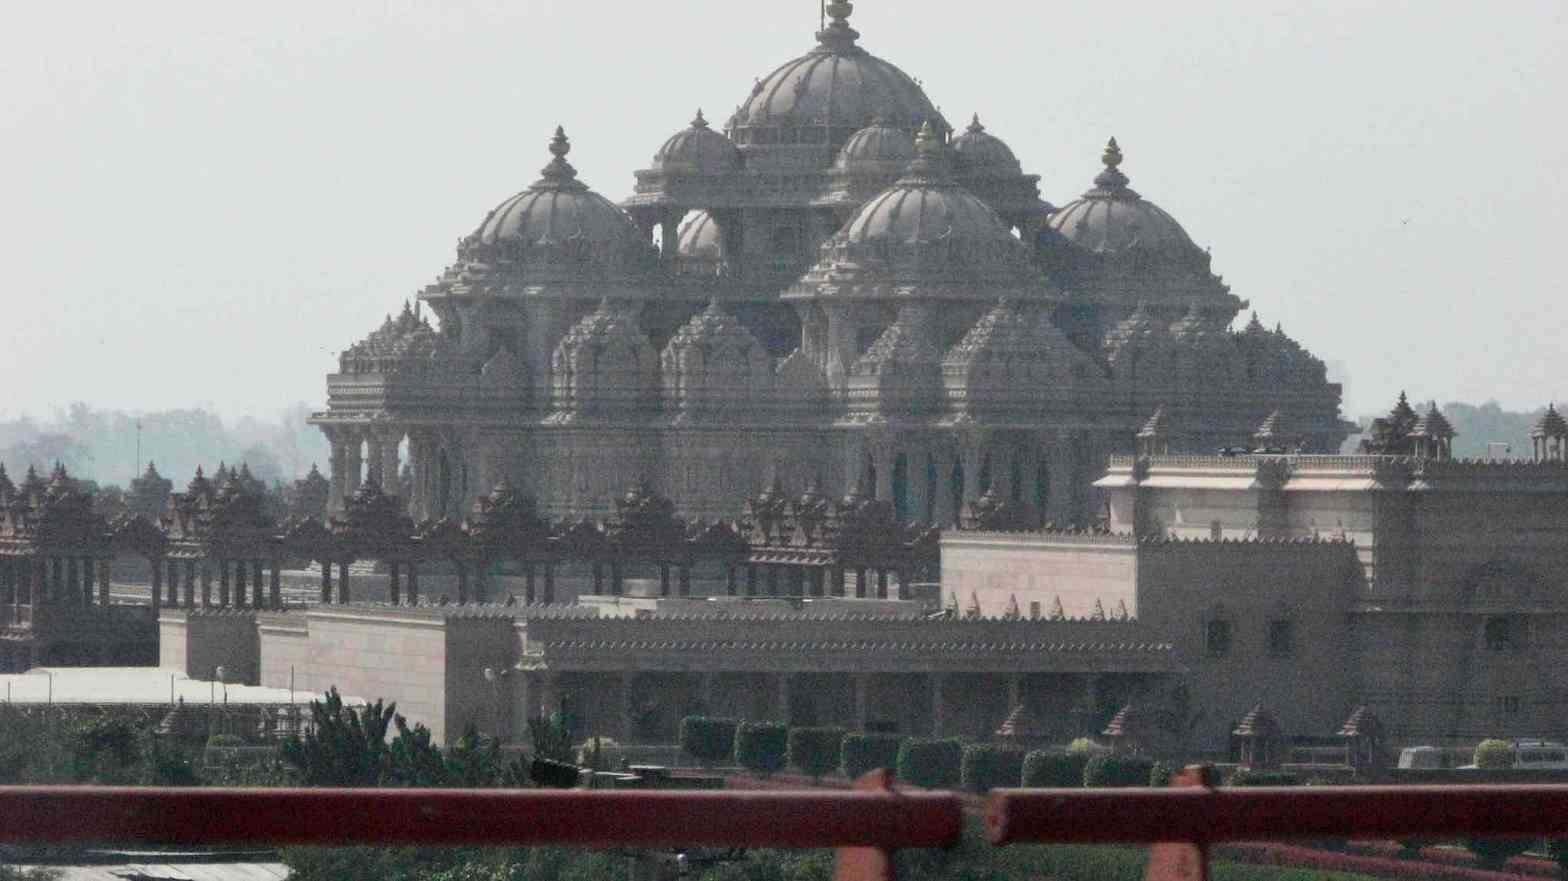 Swami Narayan Akshardham Temple in Delhi India